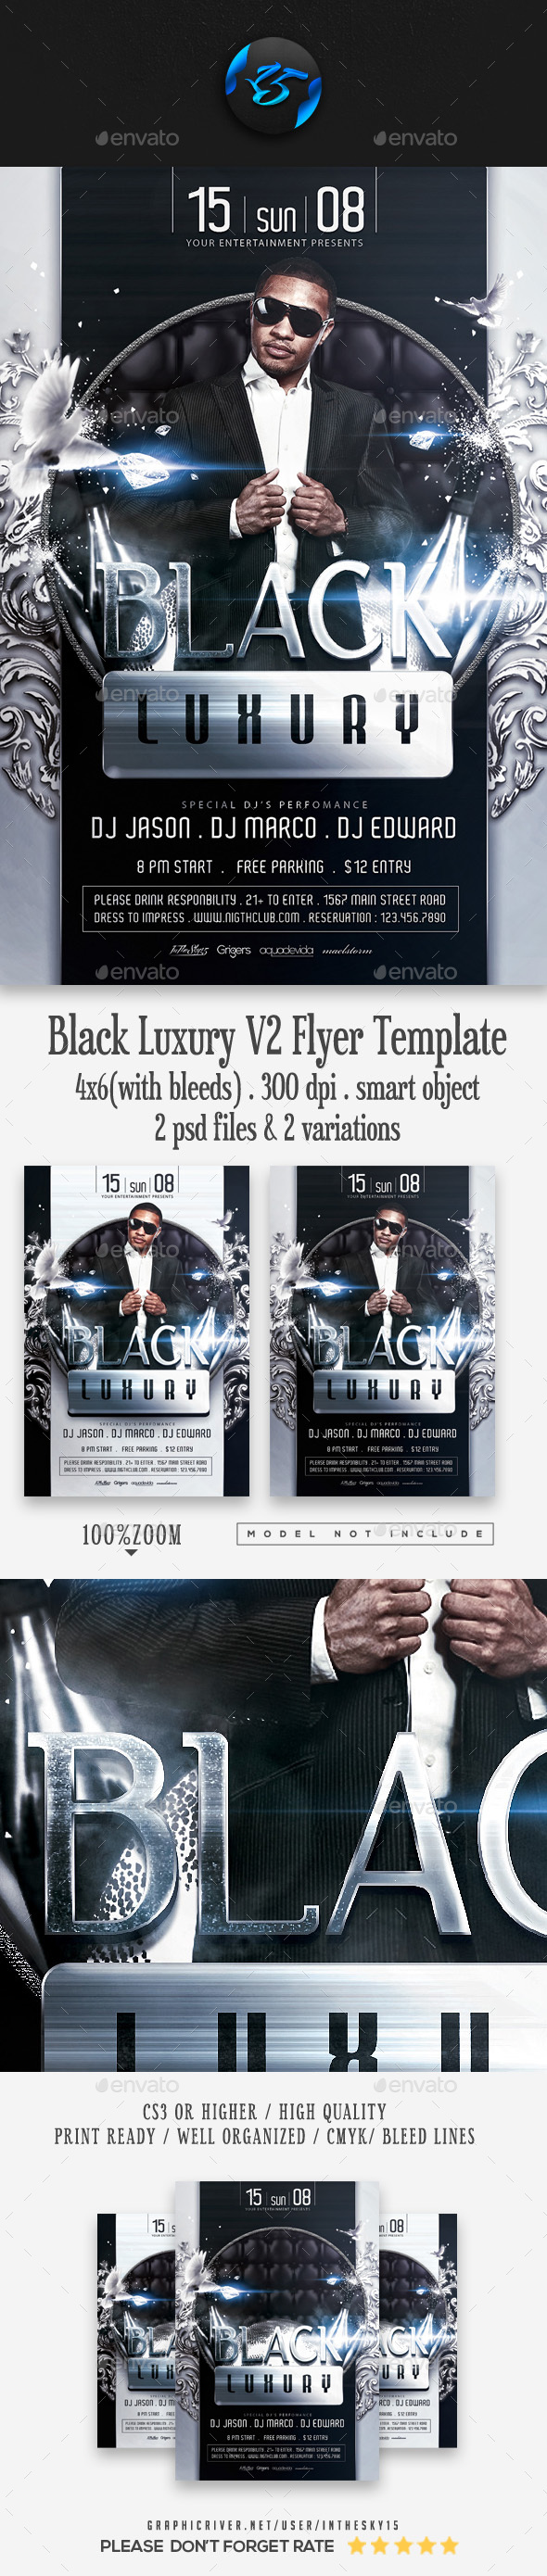 Black Luxury Flyer V2 Template - Events Flyers